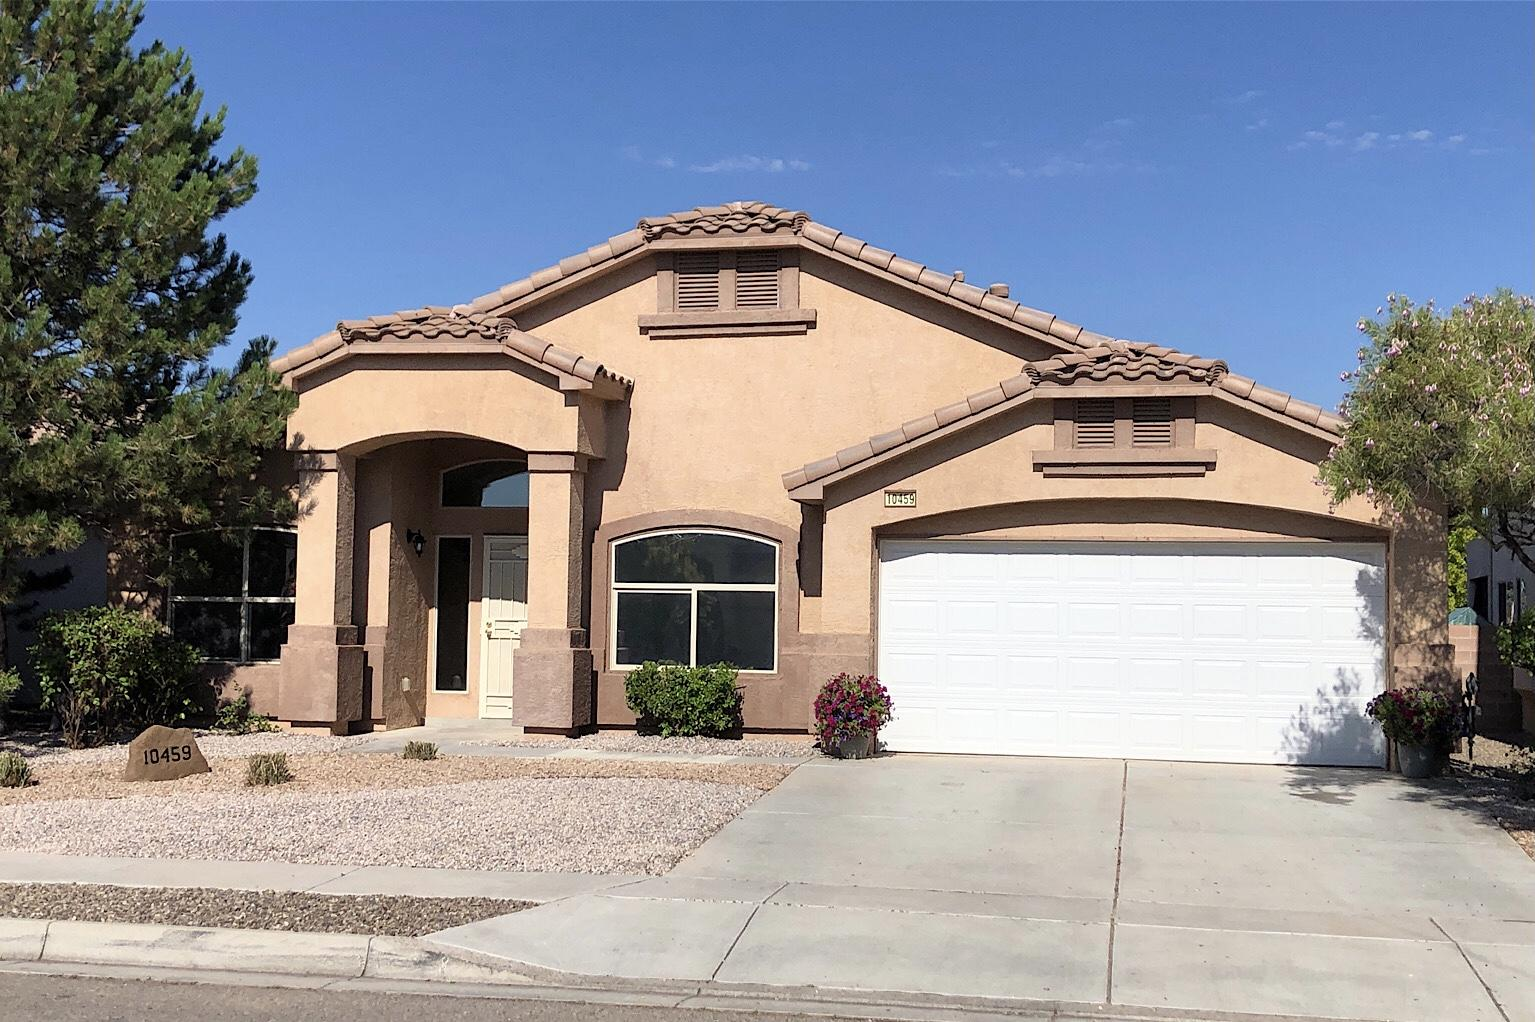 Located in the very sought after neighborhood in Cantacielo of Ventana Ranch.  Nice 4 bedroom, 2 bath DR Horton Home. Large Open Floor Plan with High Ceilings. Large Master suite, 4th bedroom/office. Granite counter tops, refrigerated air, stainless steel appliances, Large pantry. gas log fireplace, and newly installed garage door opener. Nicely xeriscape in front of home.   Backyard to be xersicaped the week of 7/19/21Prefer Stewart Title Company, Cottonwood Branch, Sandra Johnson.